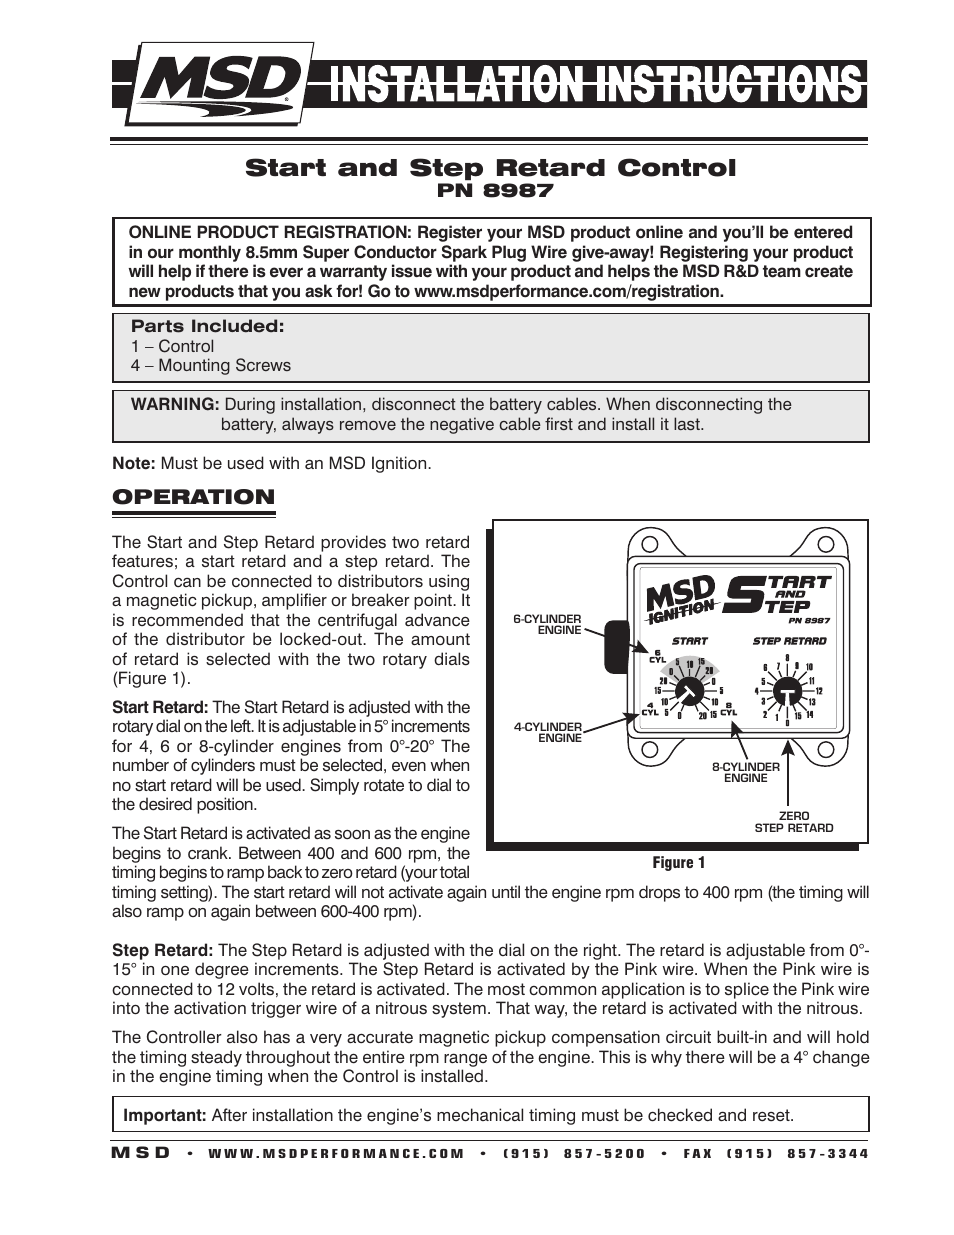 medium resolution of msd 8987 start and step timing control installation user manual 4 pages